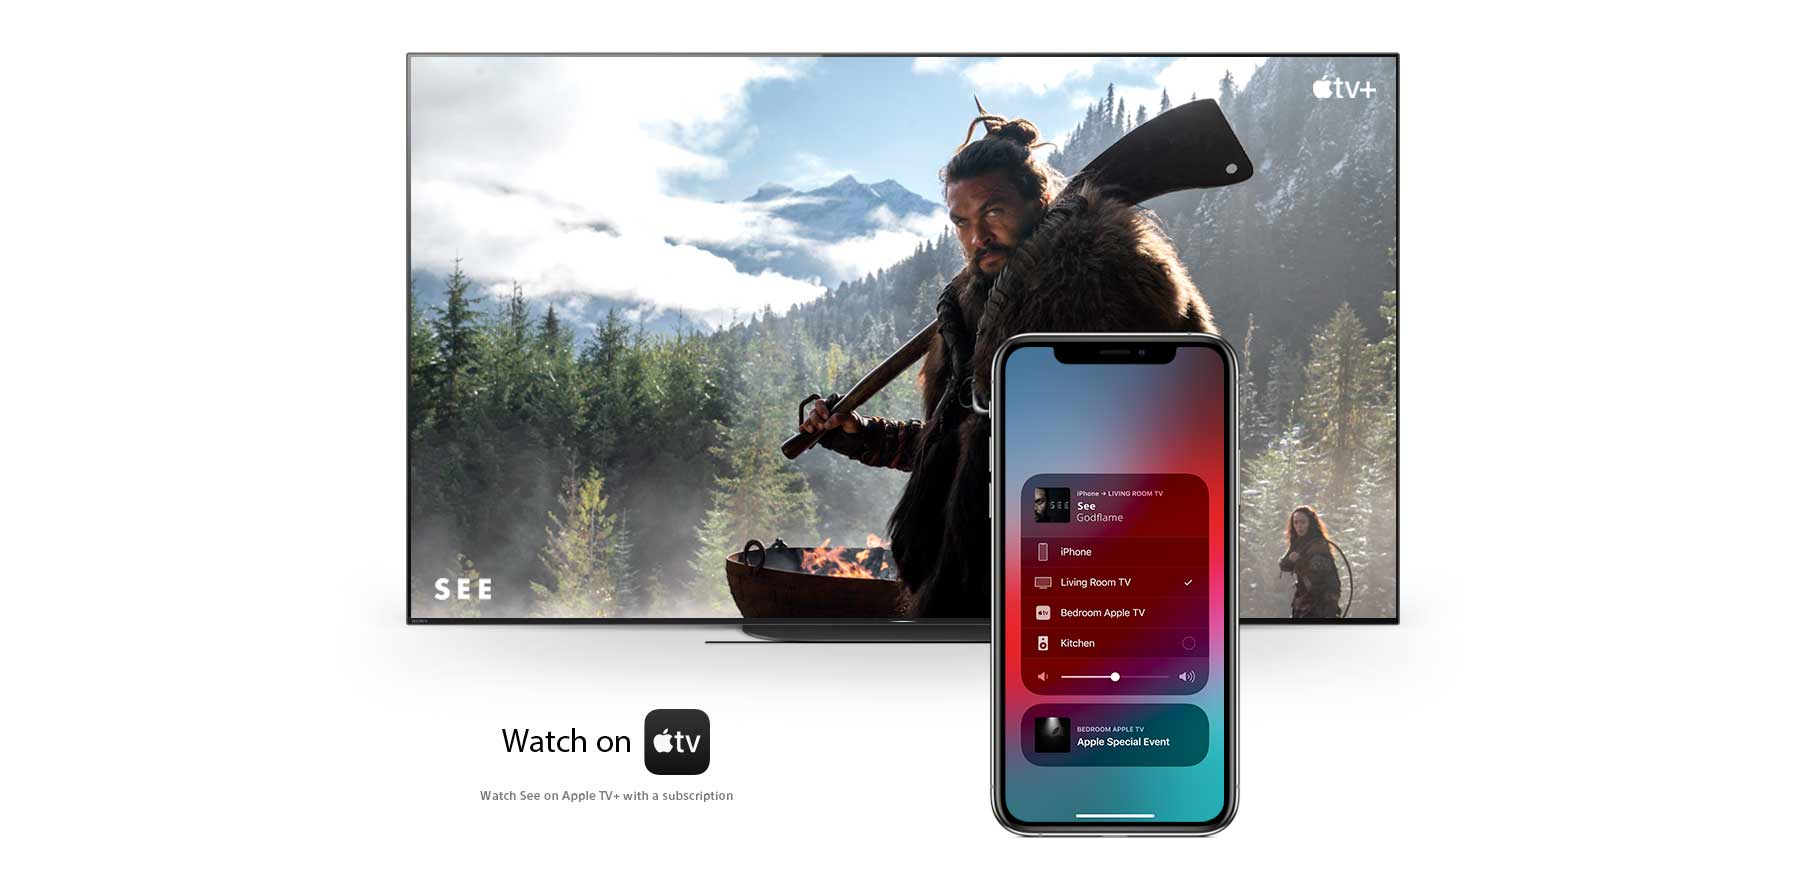 فناوری Aplle airplay